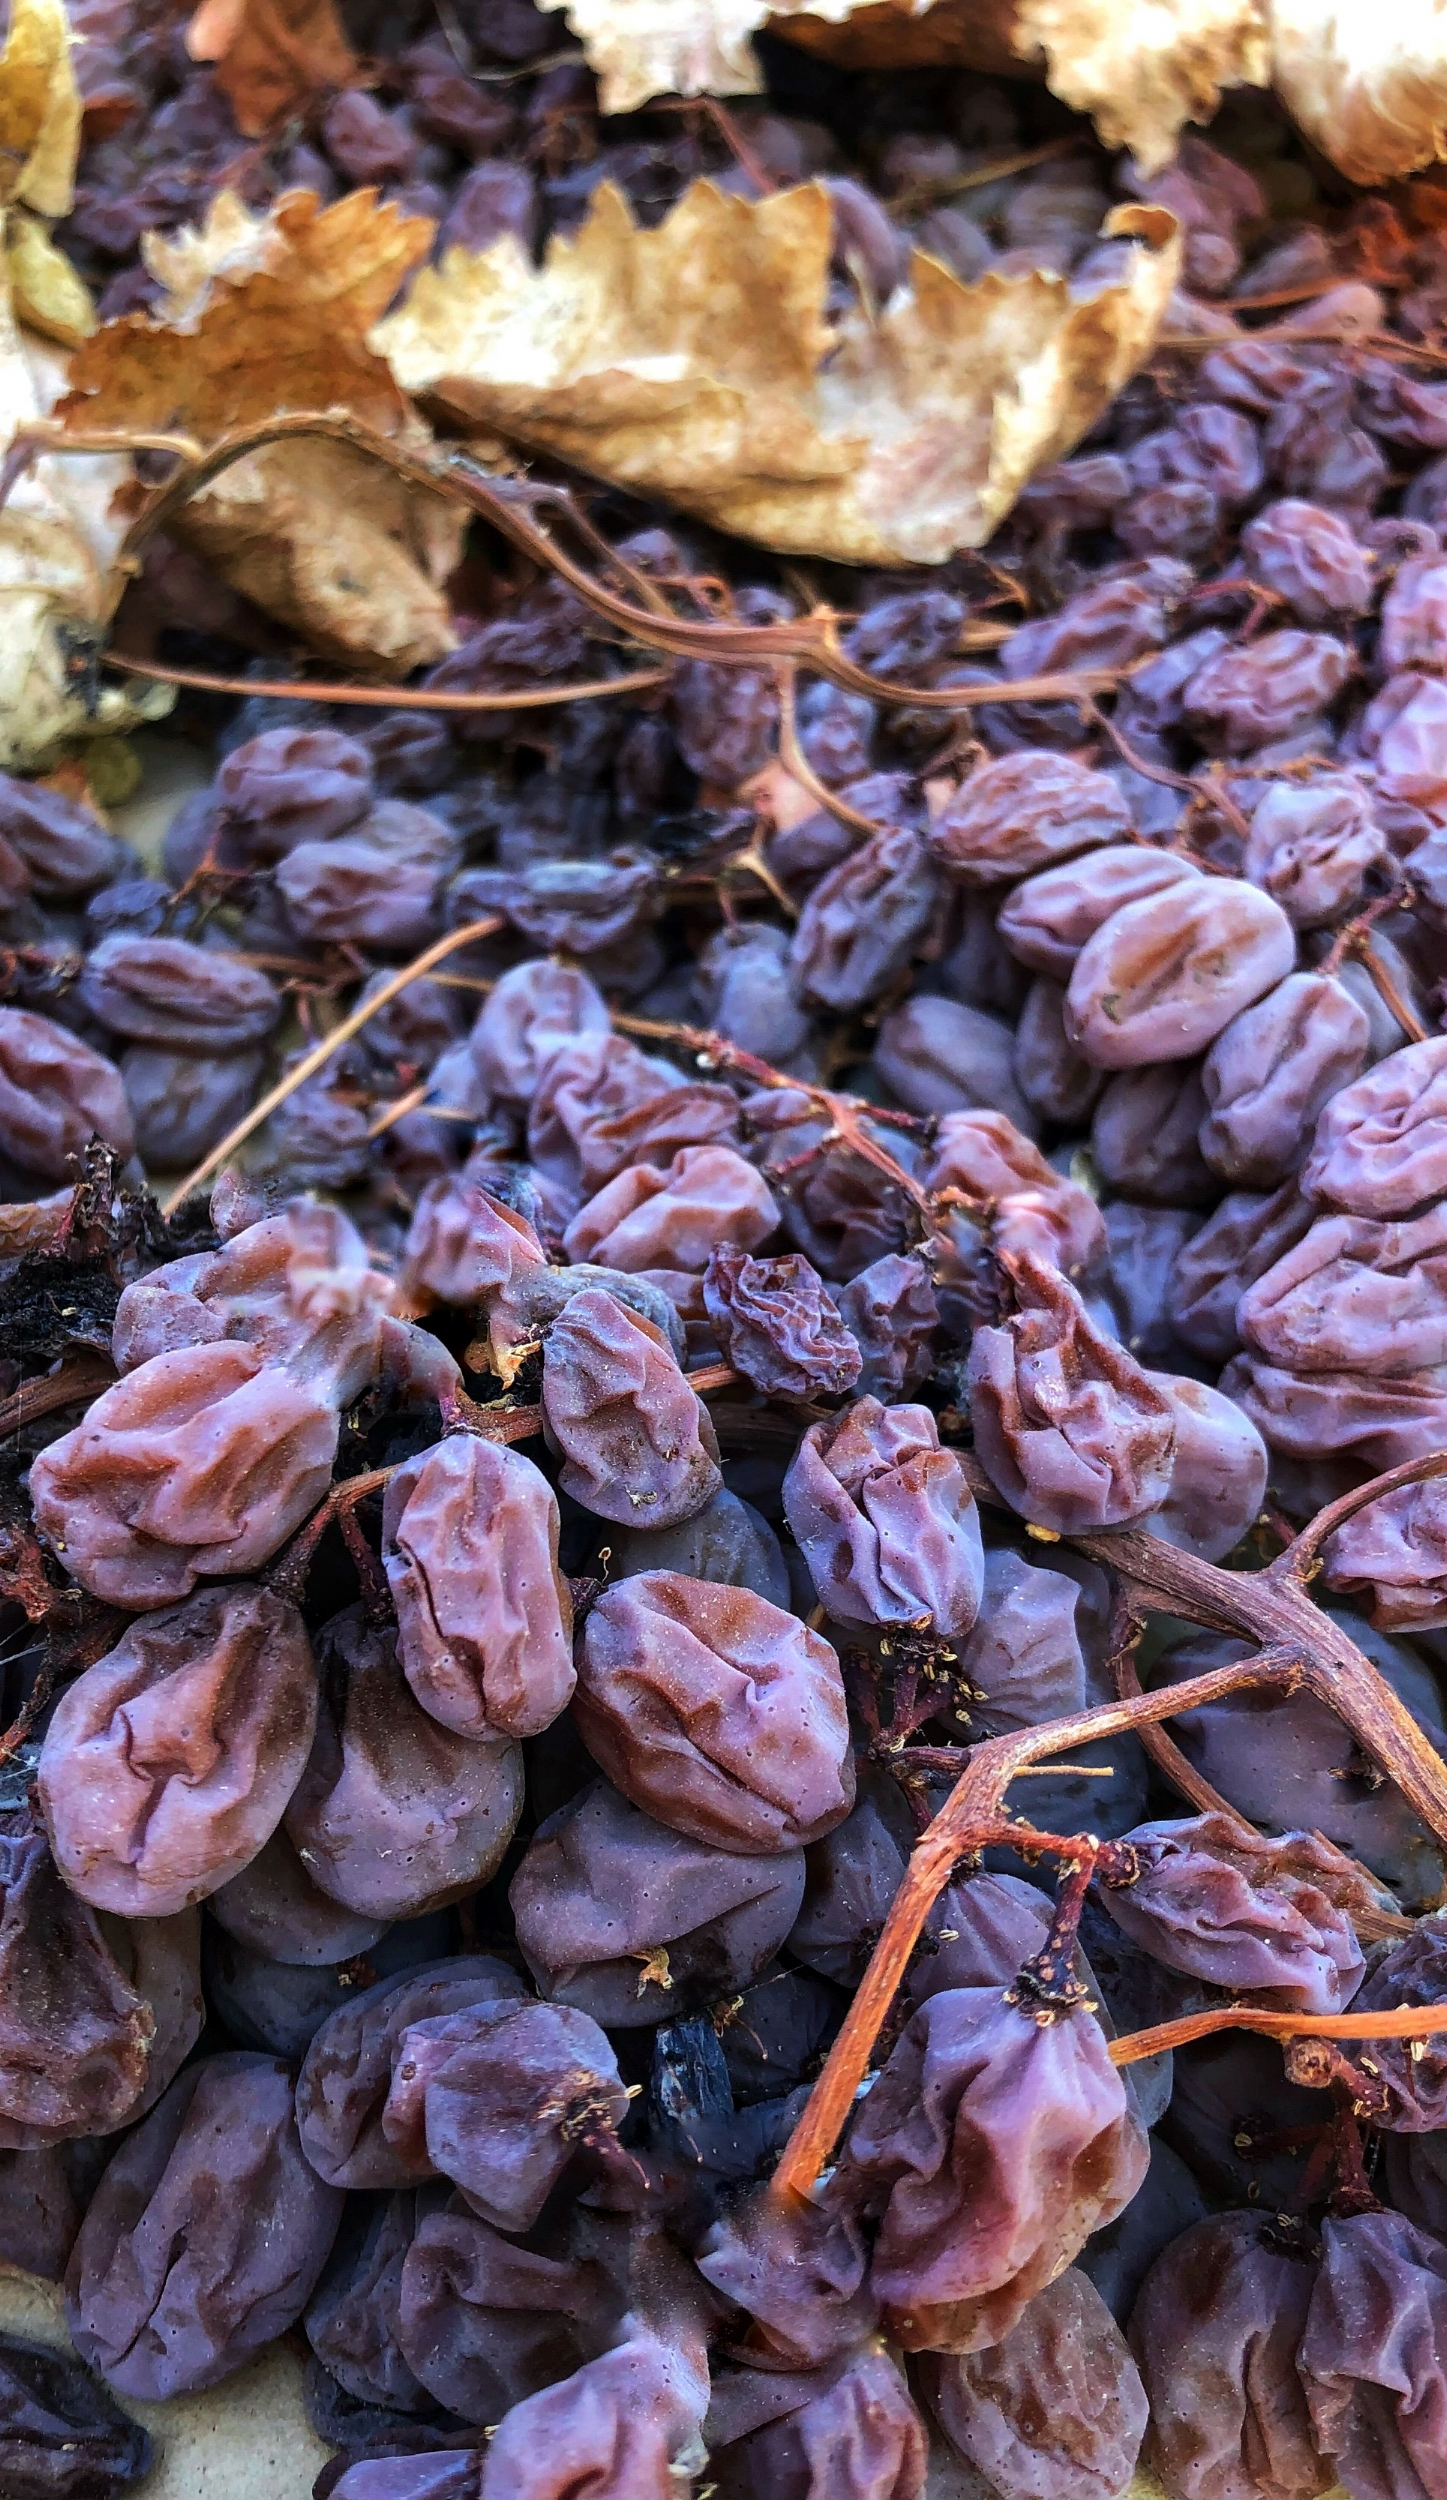 Grapes drying in the sun to make raisins. www.ChefShayna.com